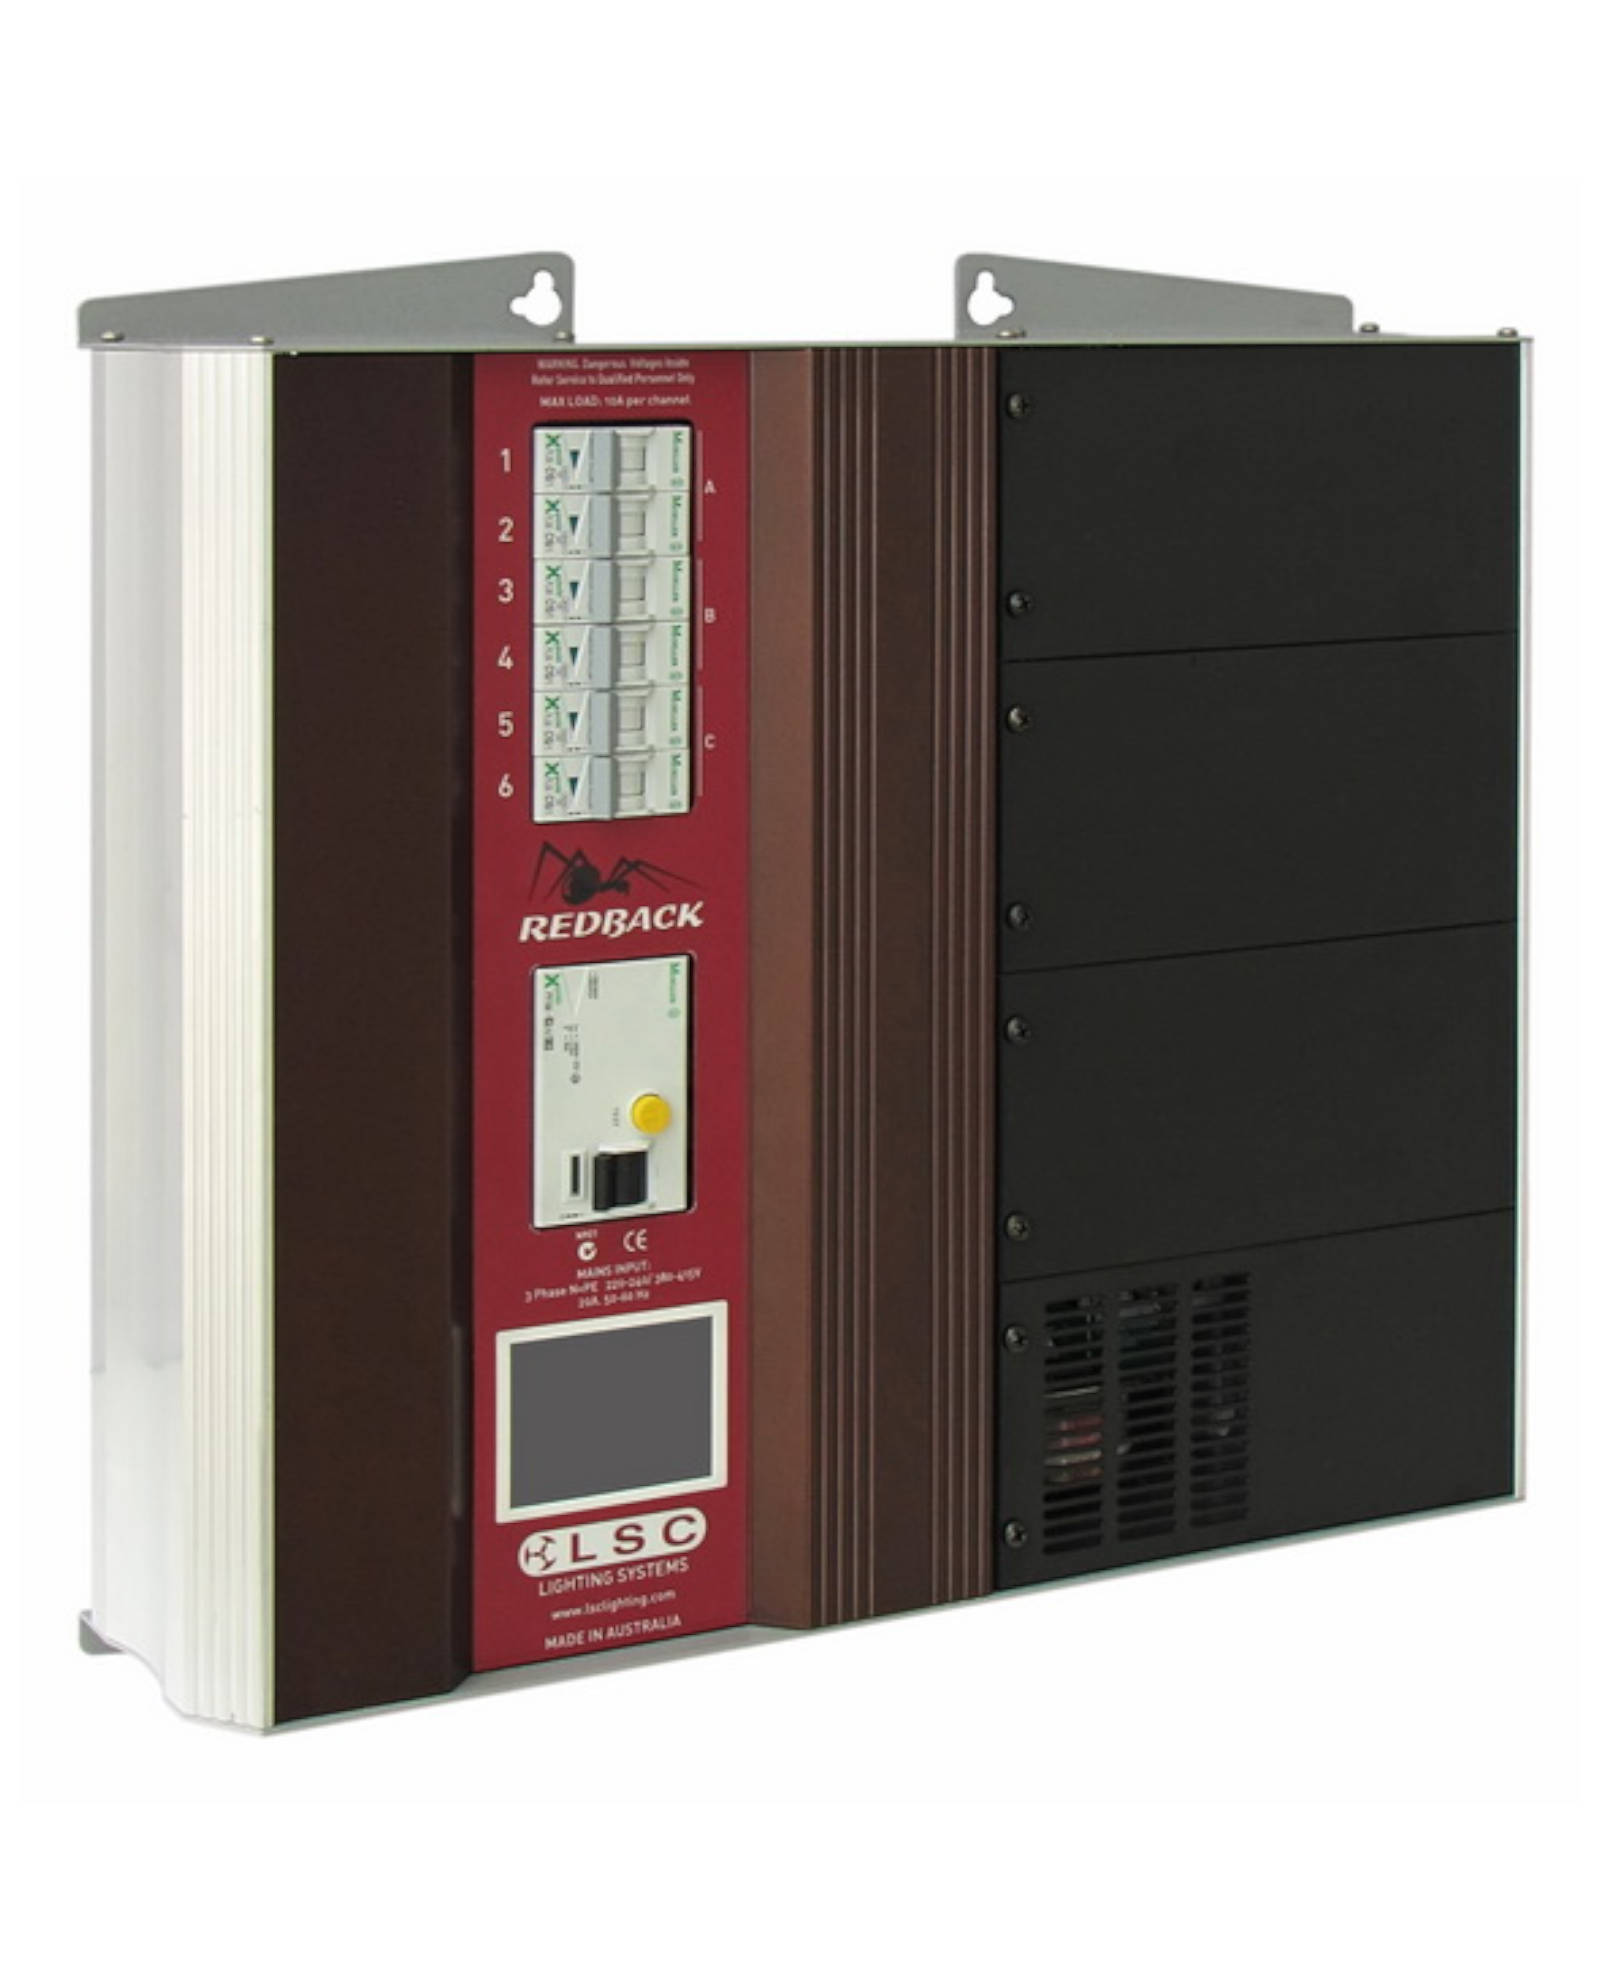 Redback Wallmount 6 Channel X 10a Dimmer With Internal Screw Terminal Outlets And Rcd Protection